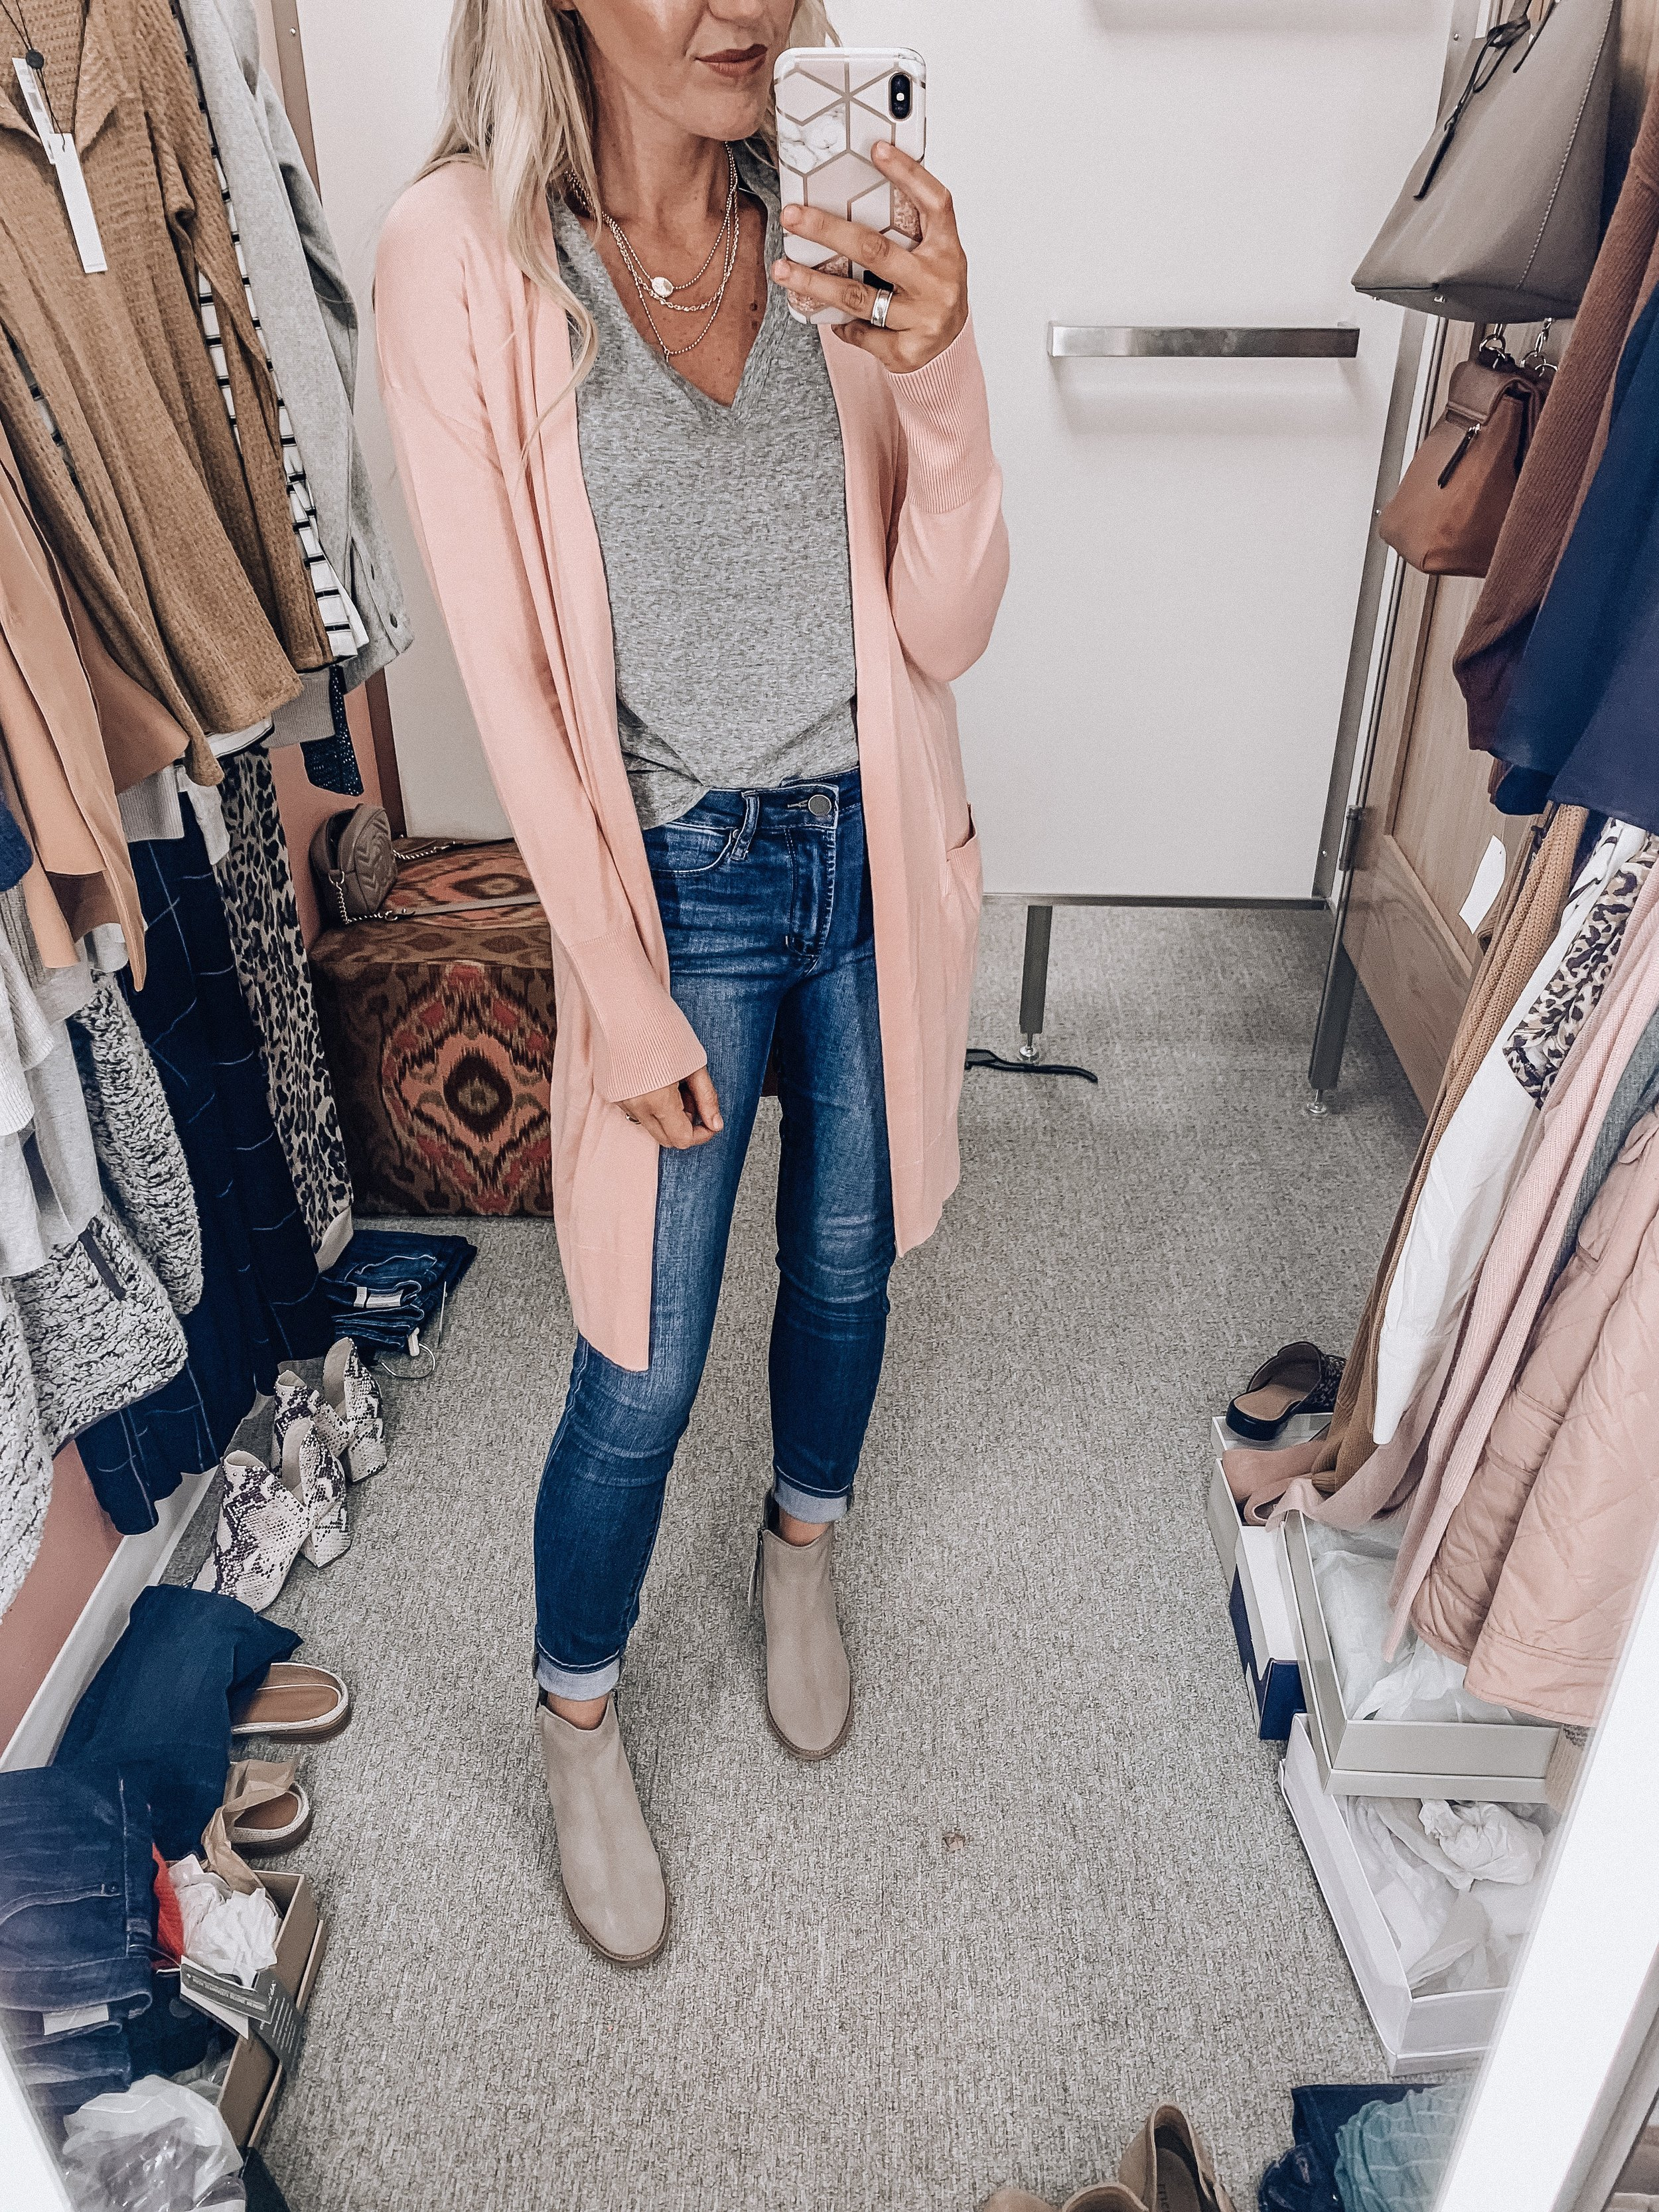 Cardigan: size extra small    Tee: size extra small    Booties: TTS    Jeans